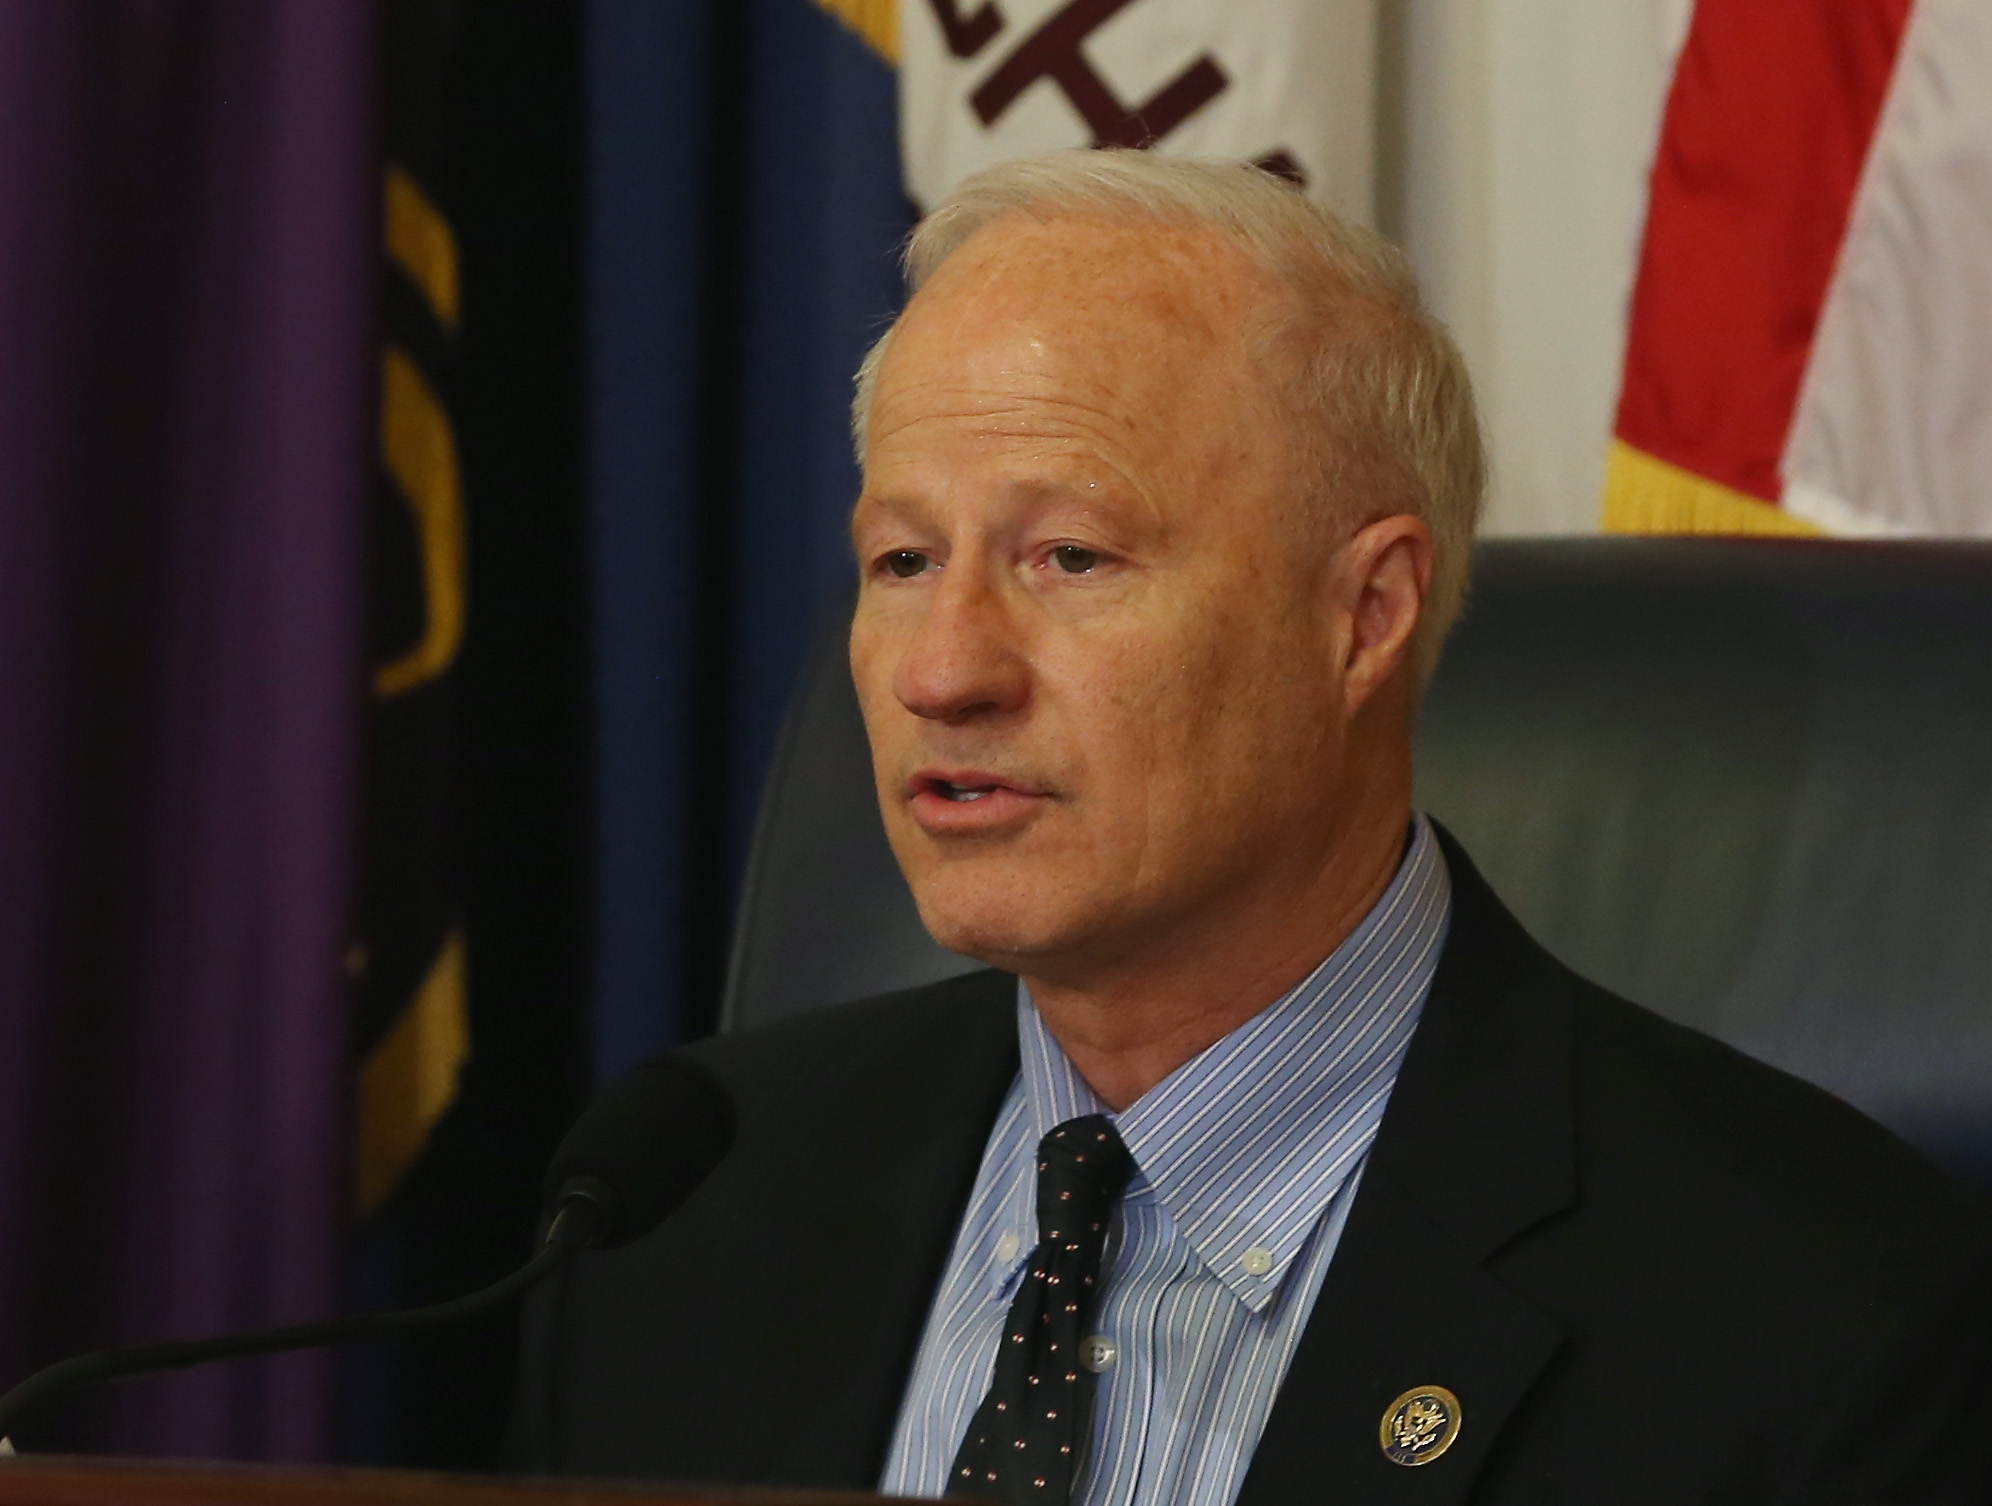 Rep. Mike Coffman (R-CO) speaks during a House Veterans Affairs Subcommittee hearing on April 13, 2014 in Washington, DC. (credit: Mark Wilson/Getty Images)